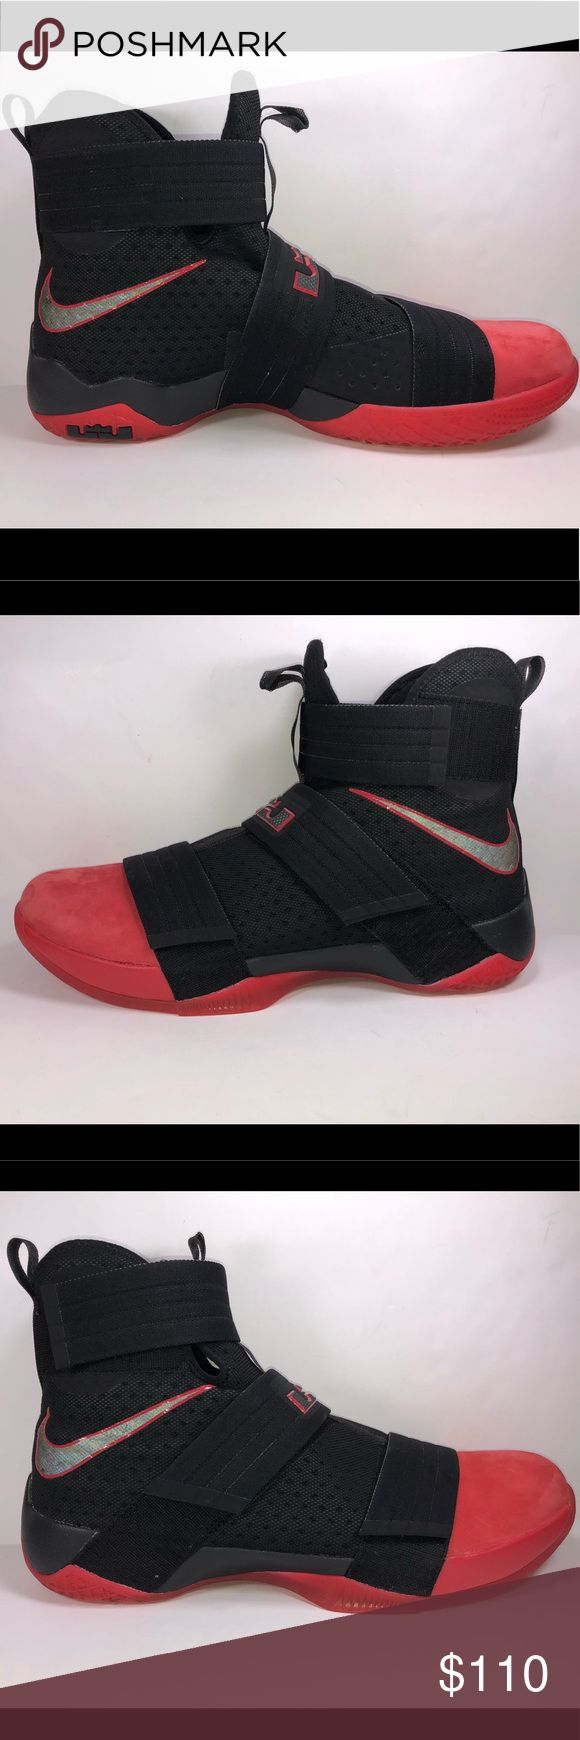 Nike Lebron Soldiers X Ohio State Red & Black sz16 Excellent Like New Condition Never Been Worn New Without Box See Pictures For Details. S499 Nike Shoes Sneakers